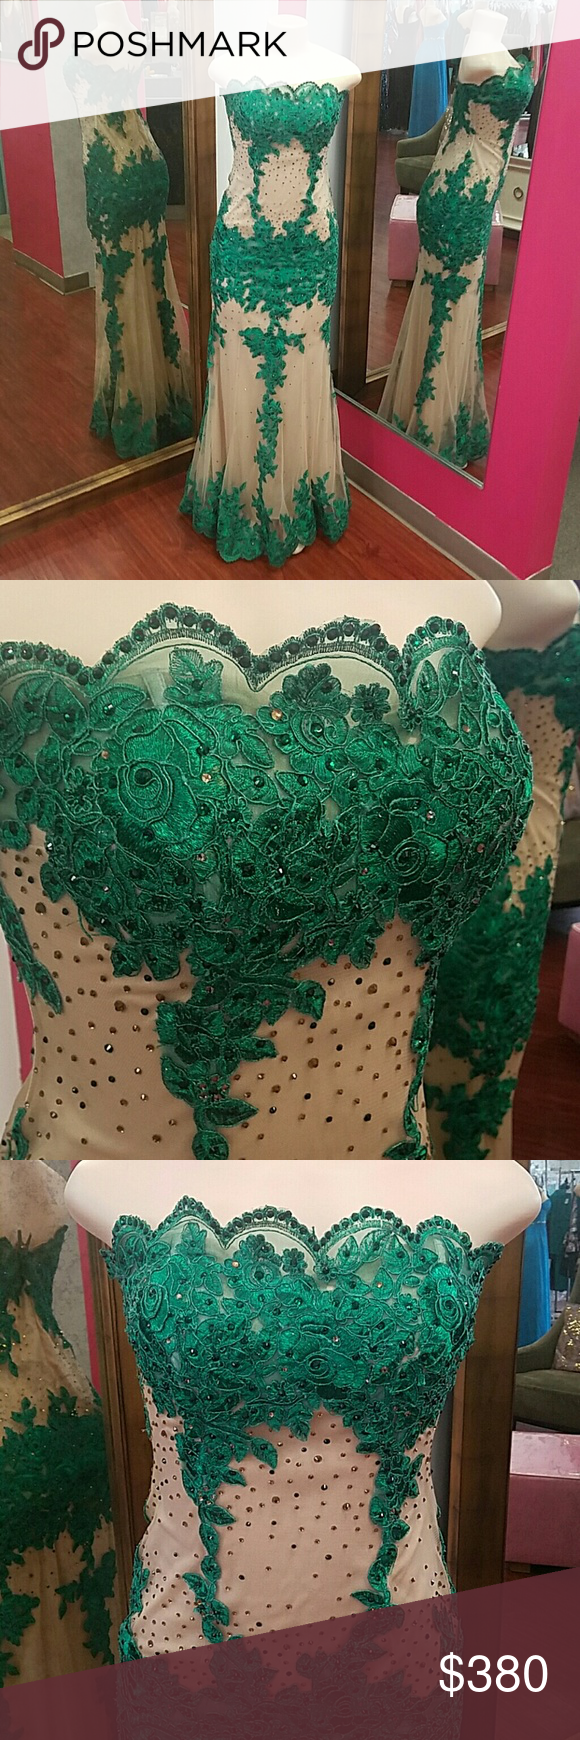 Sz M strapless prom dress green nude Nude Strapless dress with green appliqu?s.  Has rhinestones all over. Dresses Prom